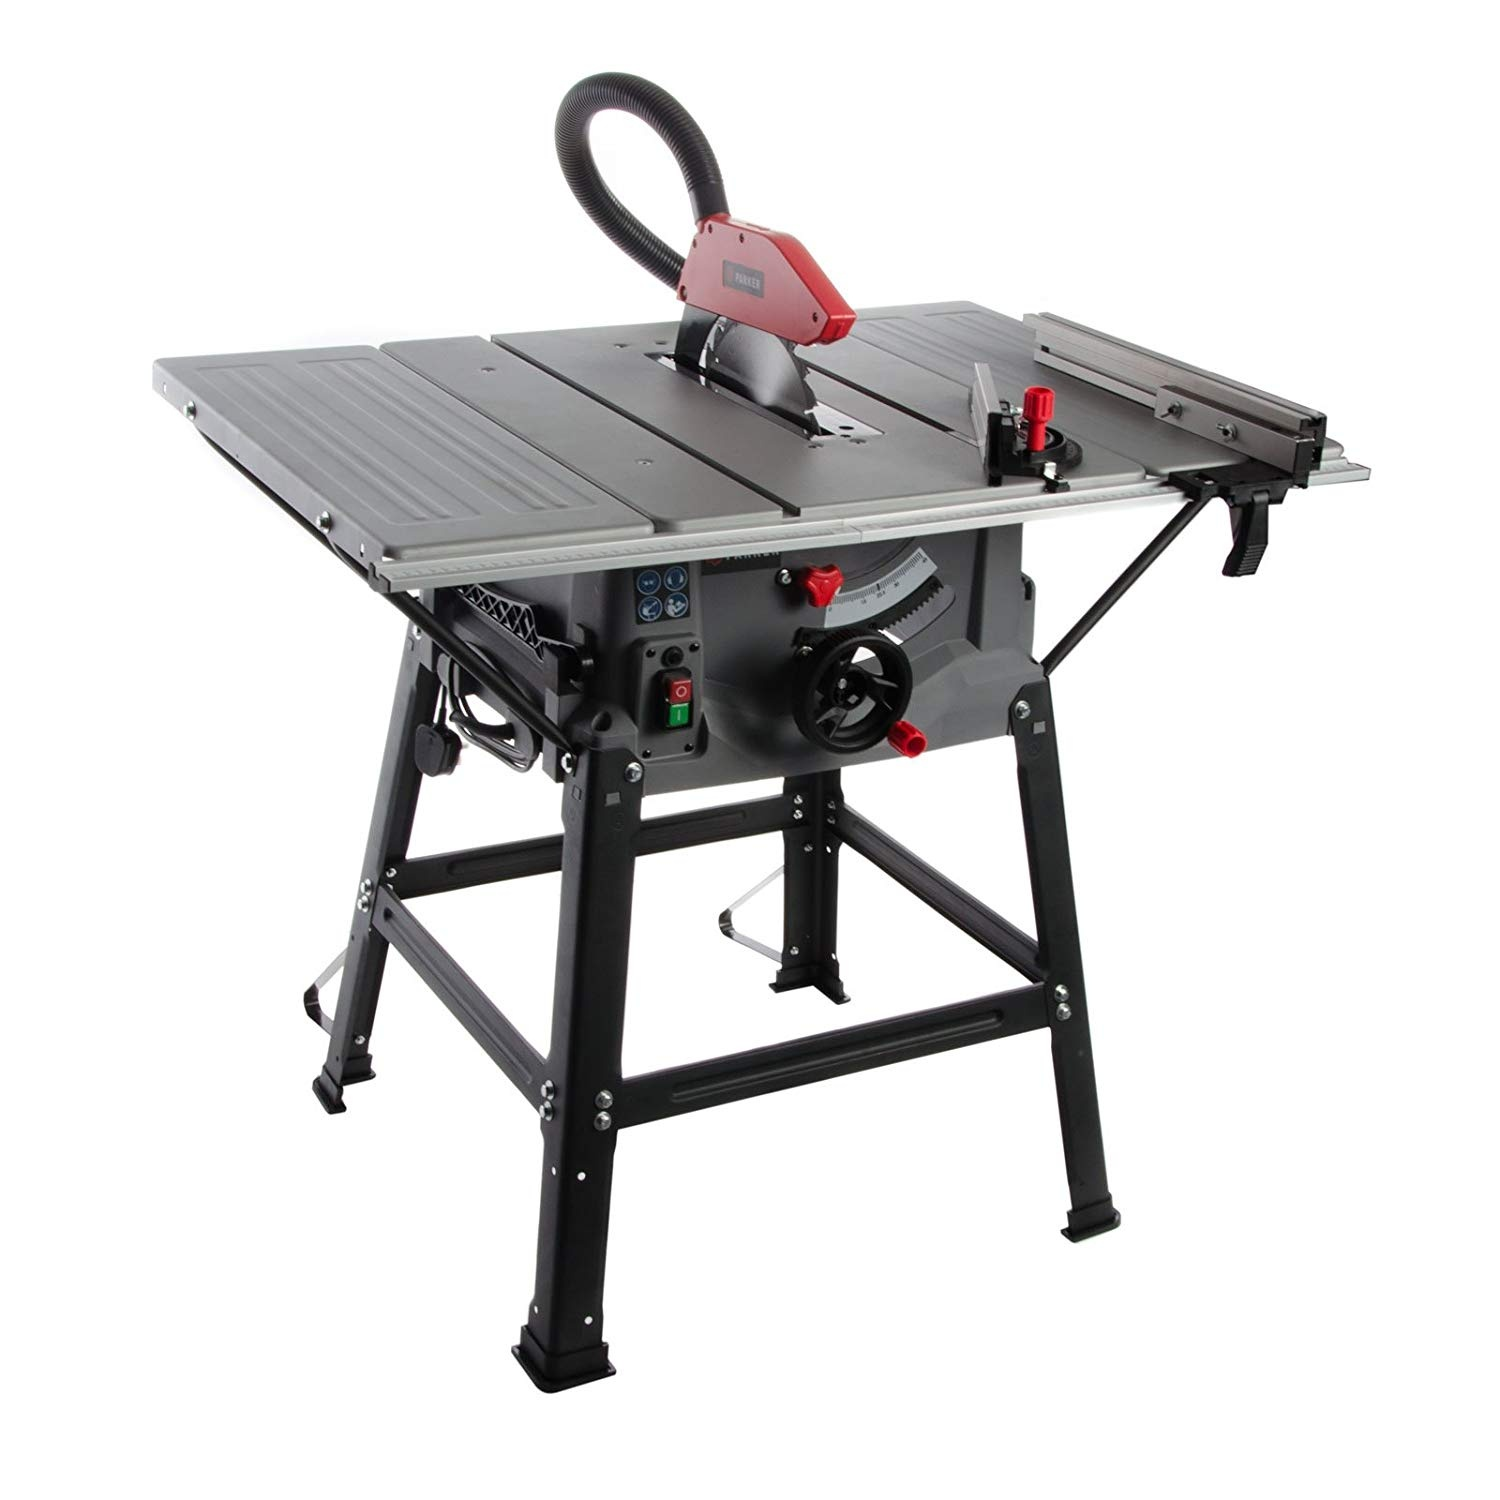 Pleasant What Kind Of Motor Do I Need For My Table Saw Quora Home Interior And Landscaping Ologienasavecom